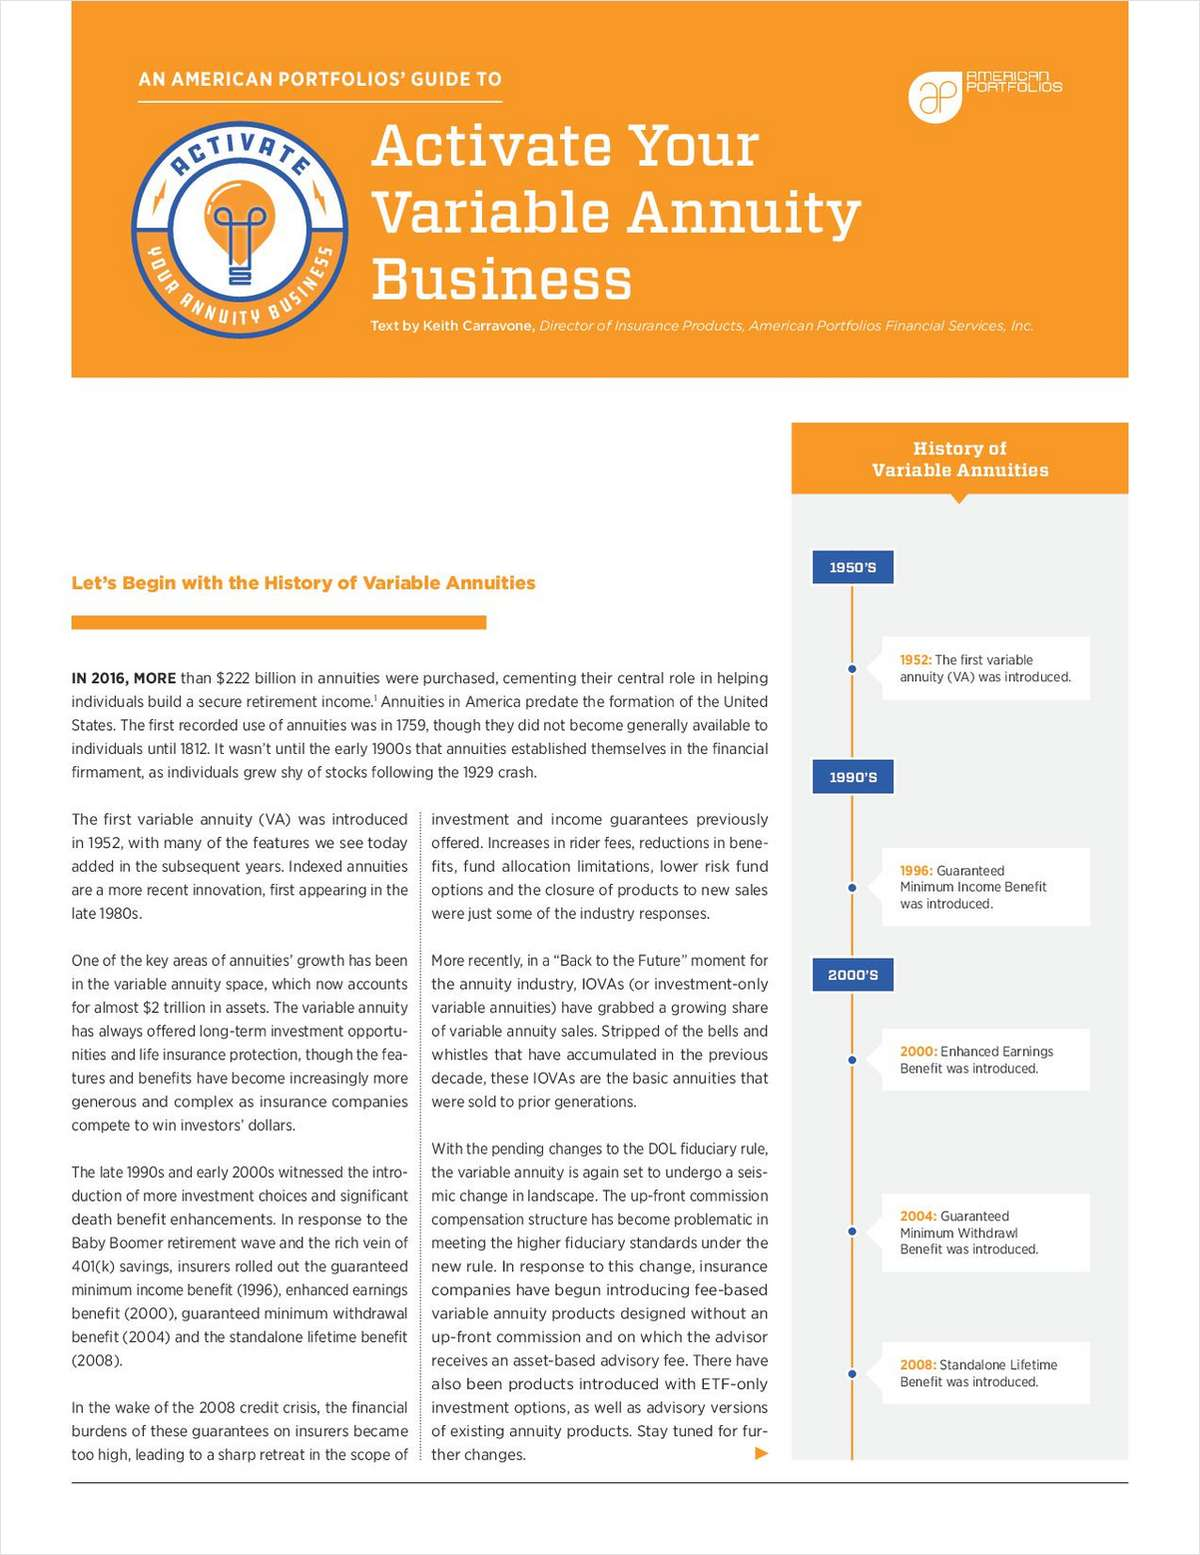 Activate Your Variable Annuity Business